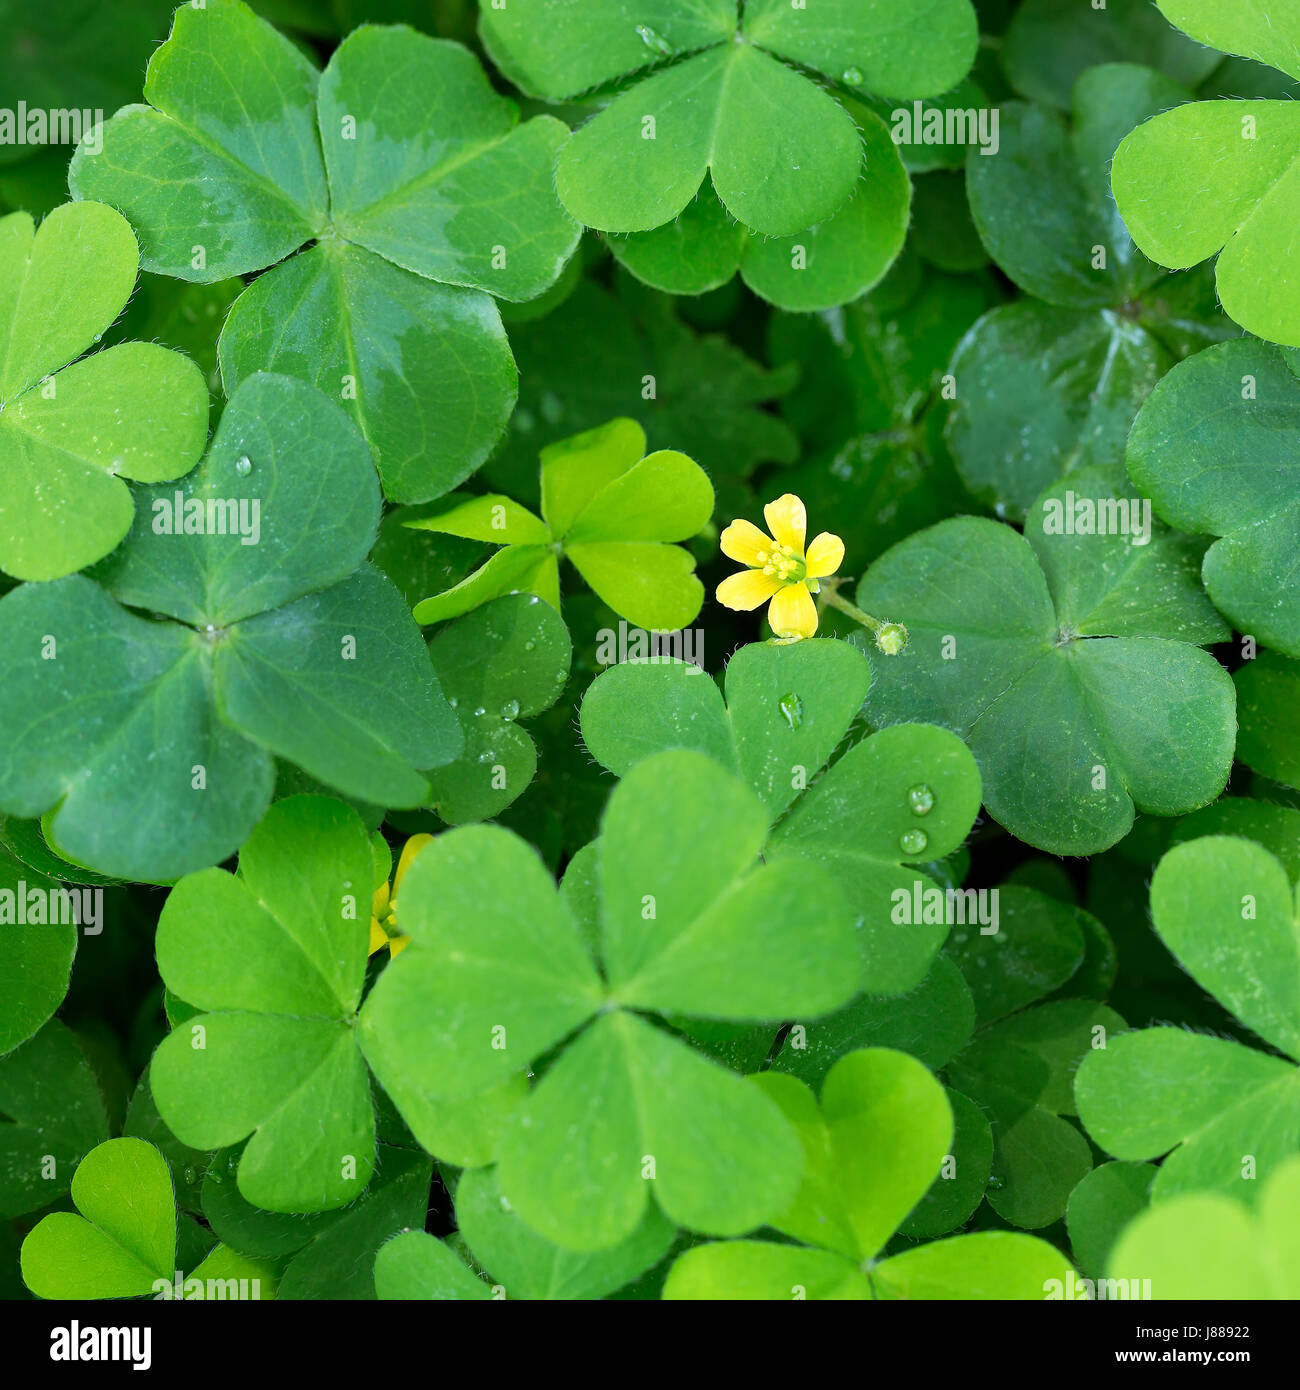 Clover And Little Yellow Flower Stock Photo 142782922 Alamy